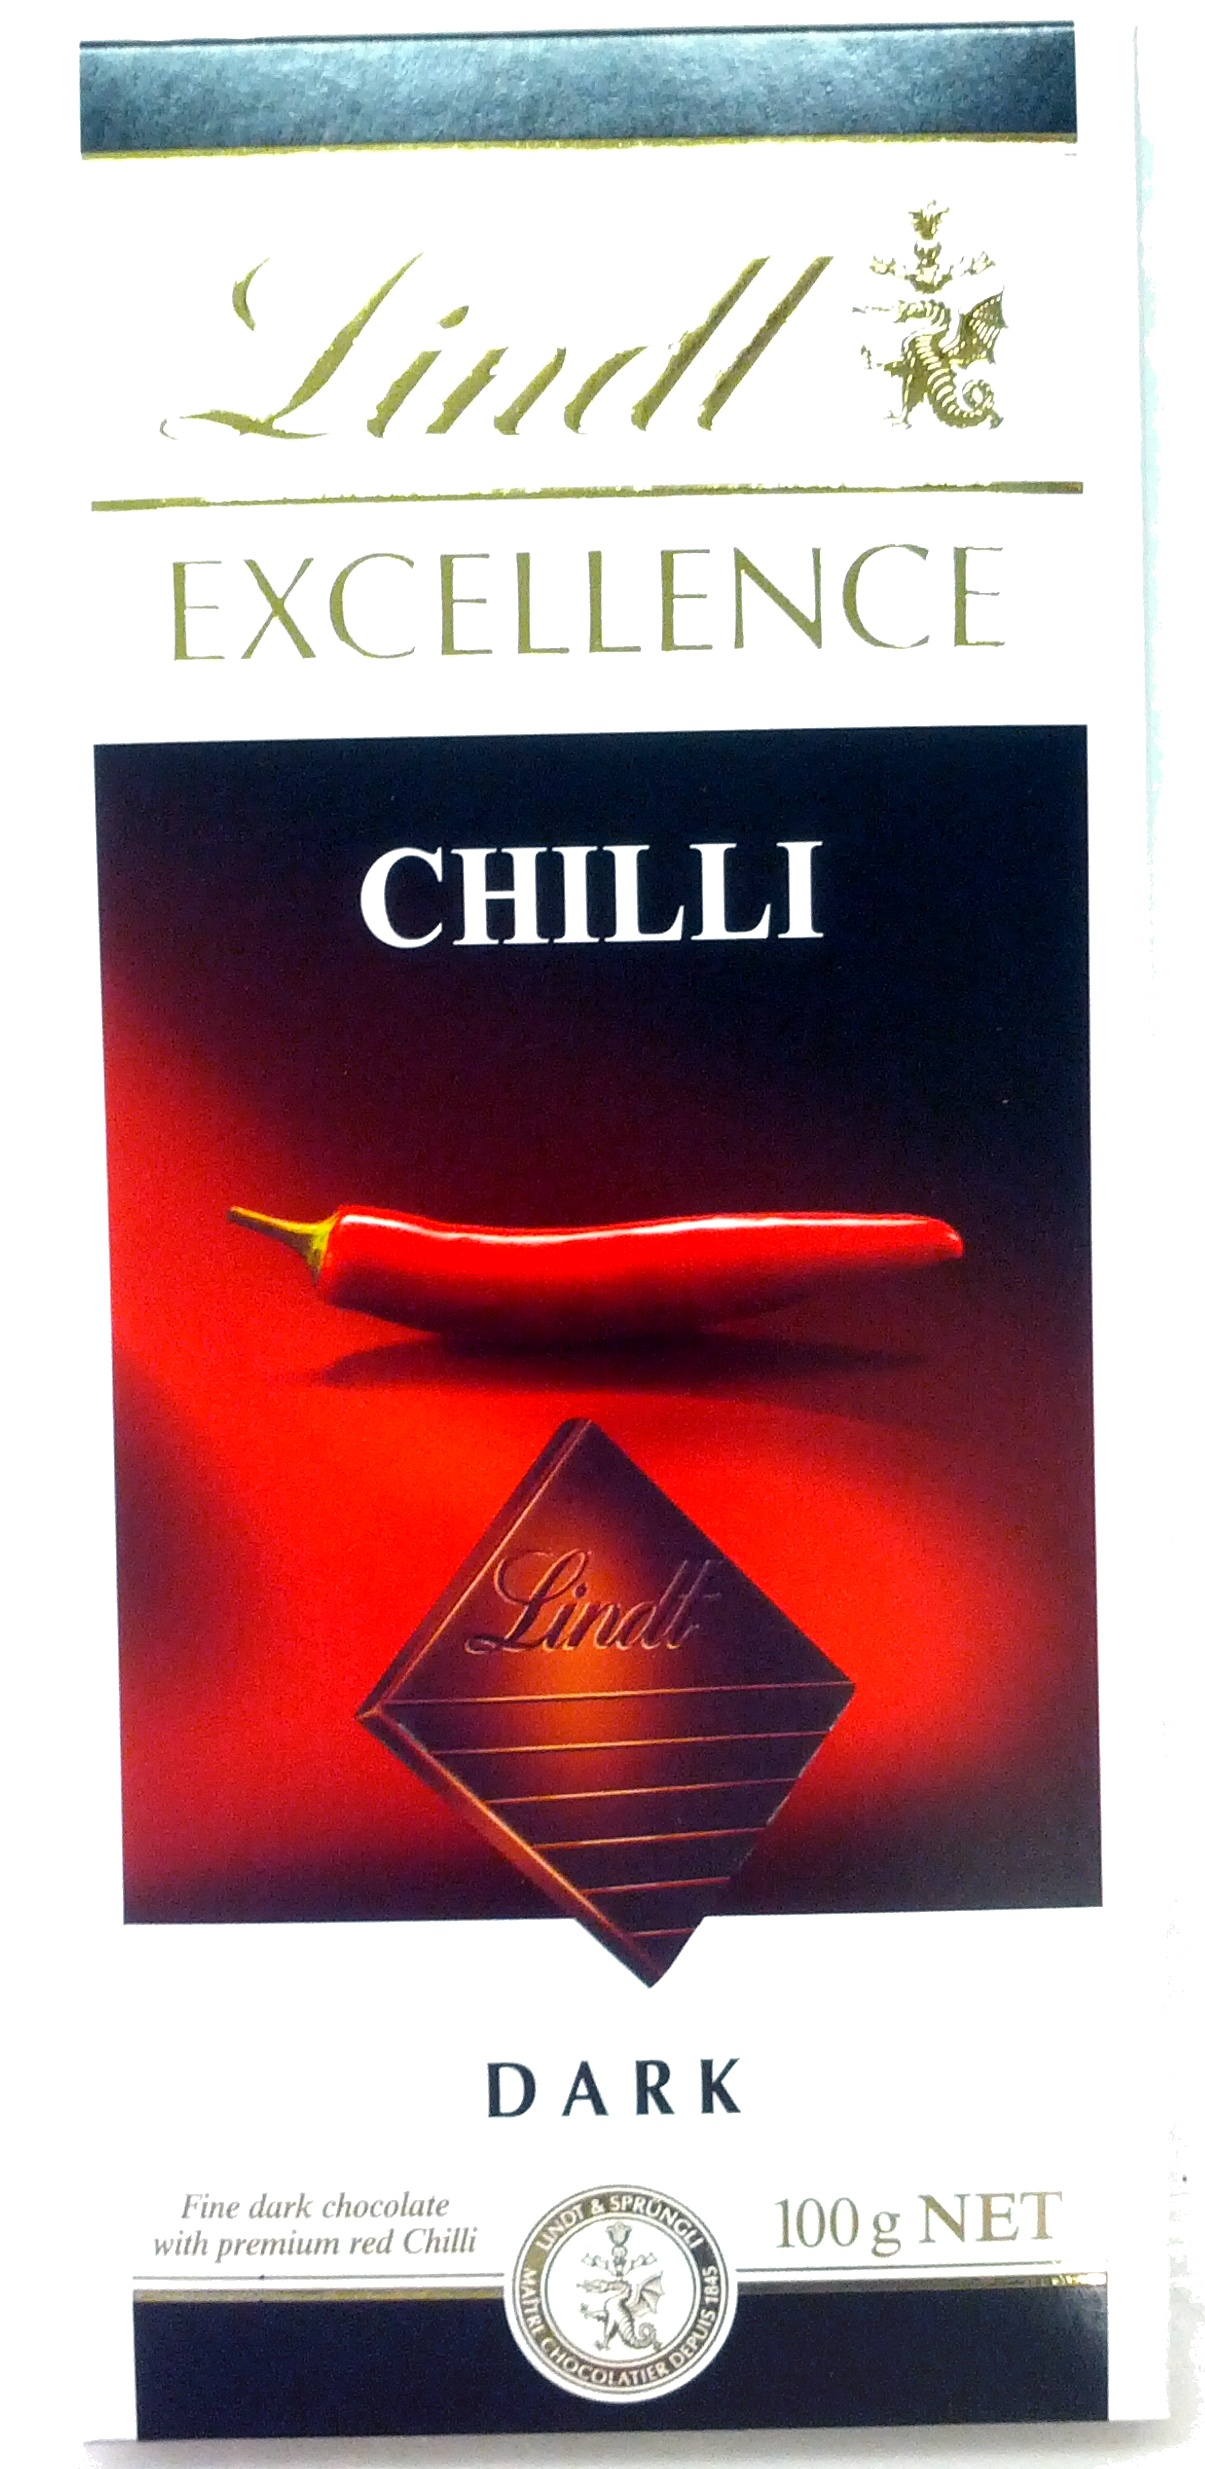 Dark chocolate chilli - Product